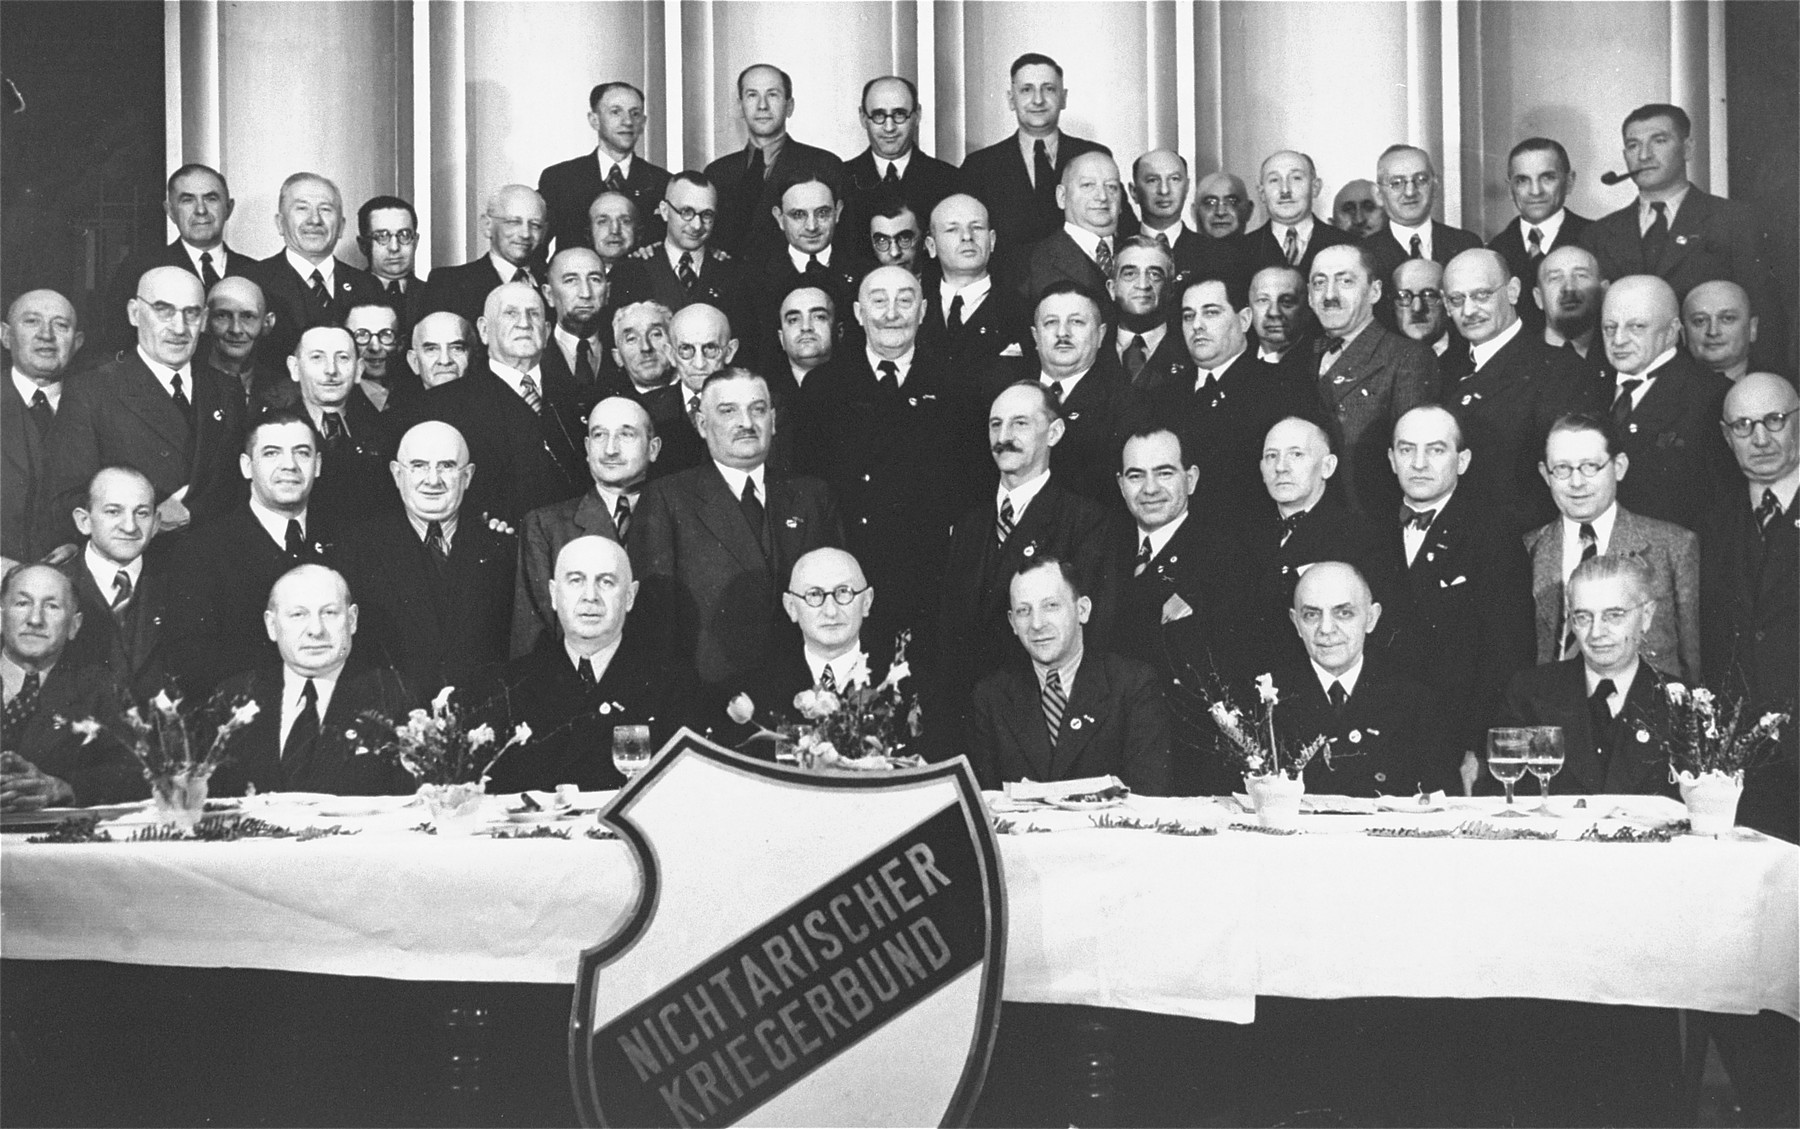 Group portrait of members of the Nichtarischer Kriegerbund [Non-Aryan Jewish War Veterans Society].  Among those pictured is Georg Anker (1885-1955, third row, fourth from the left).